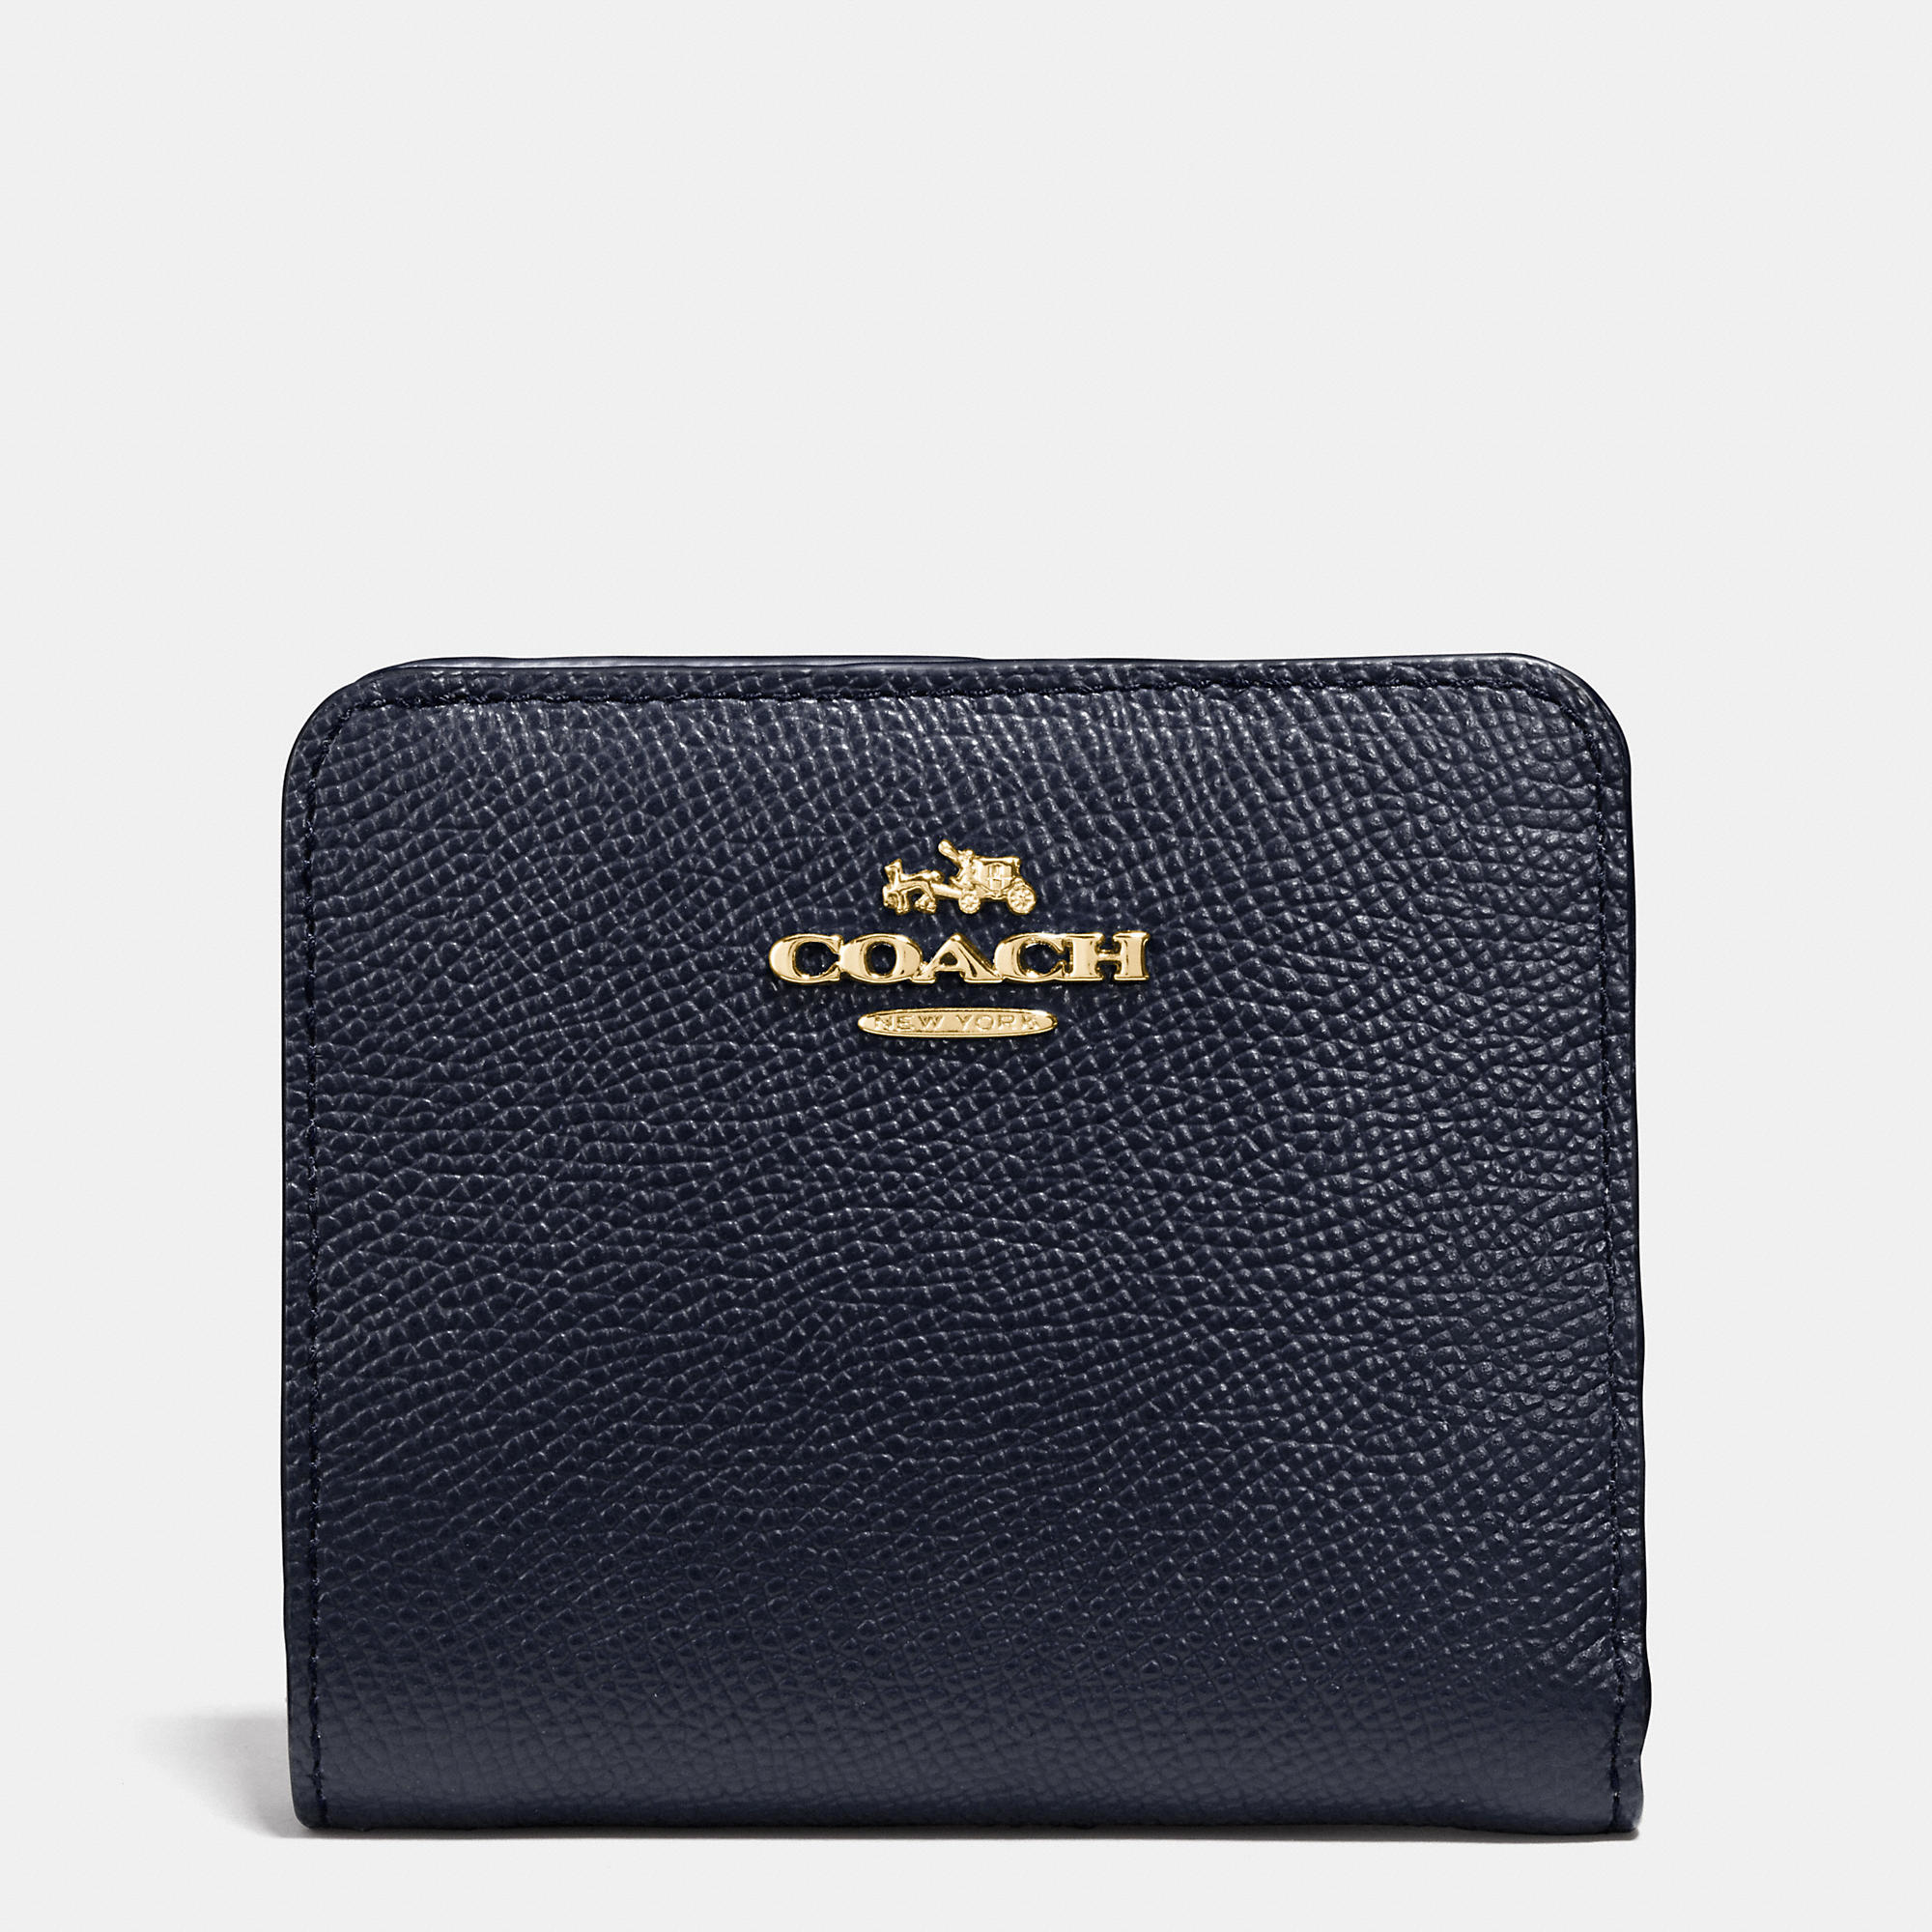 Coach Small Wallet In Colorblock Leather In Gold Light